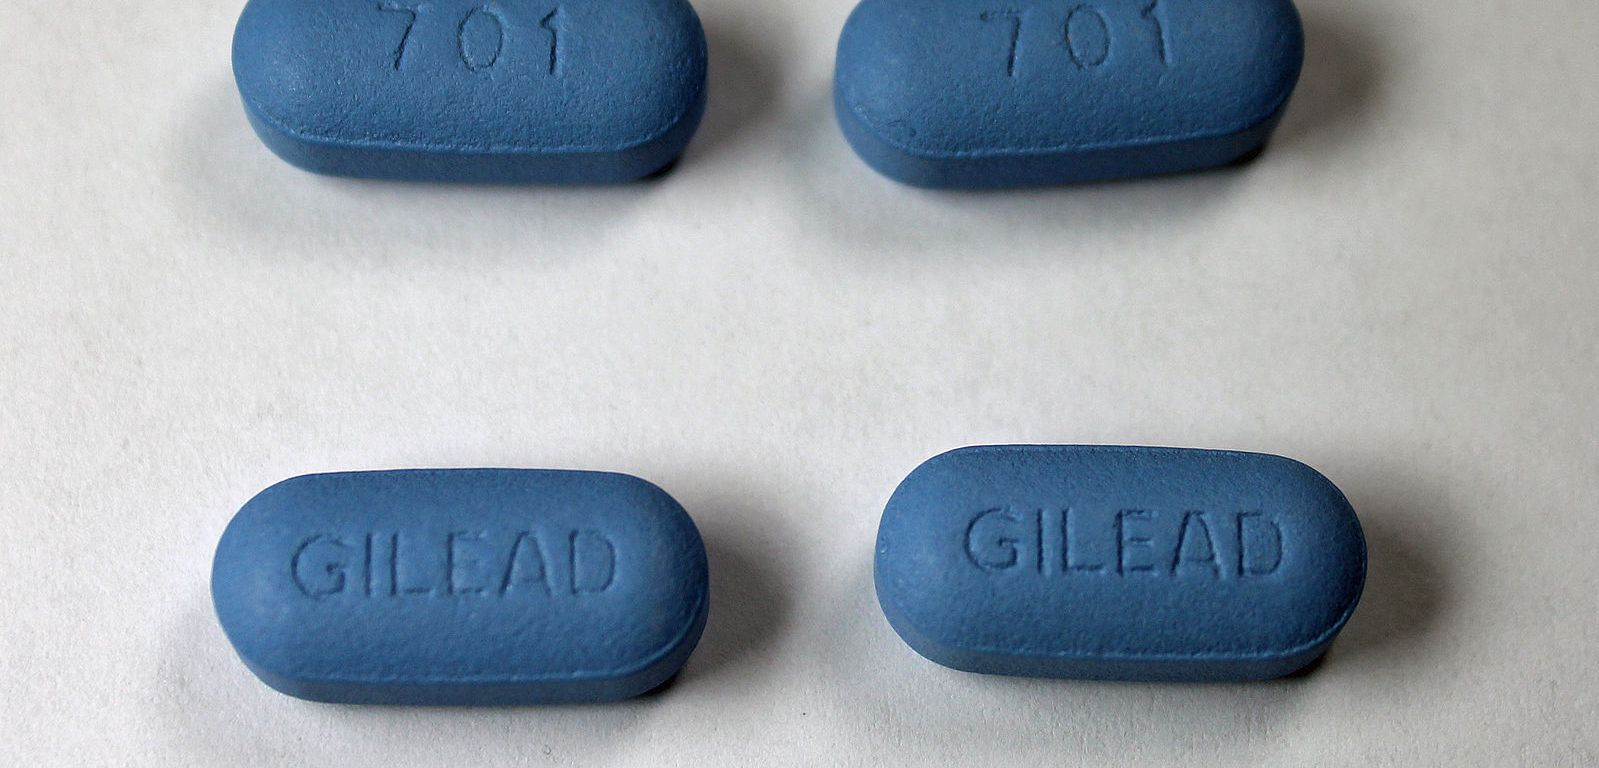 The anti-retroviral drug Truvada; Author- Jeffrey Beall's own work, from Wikimedia Commons